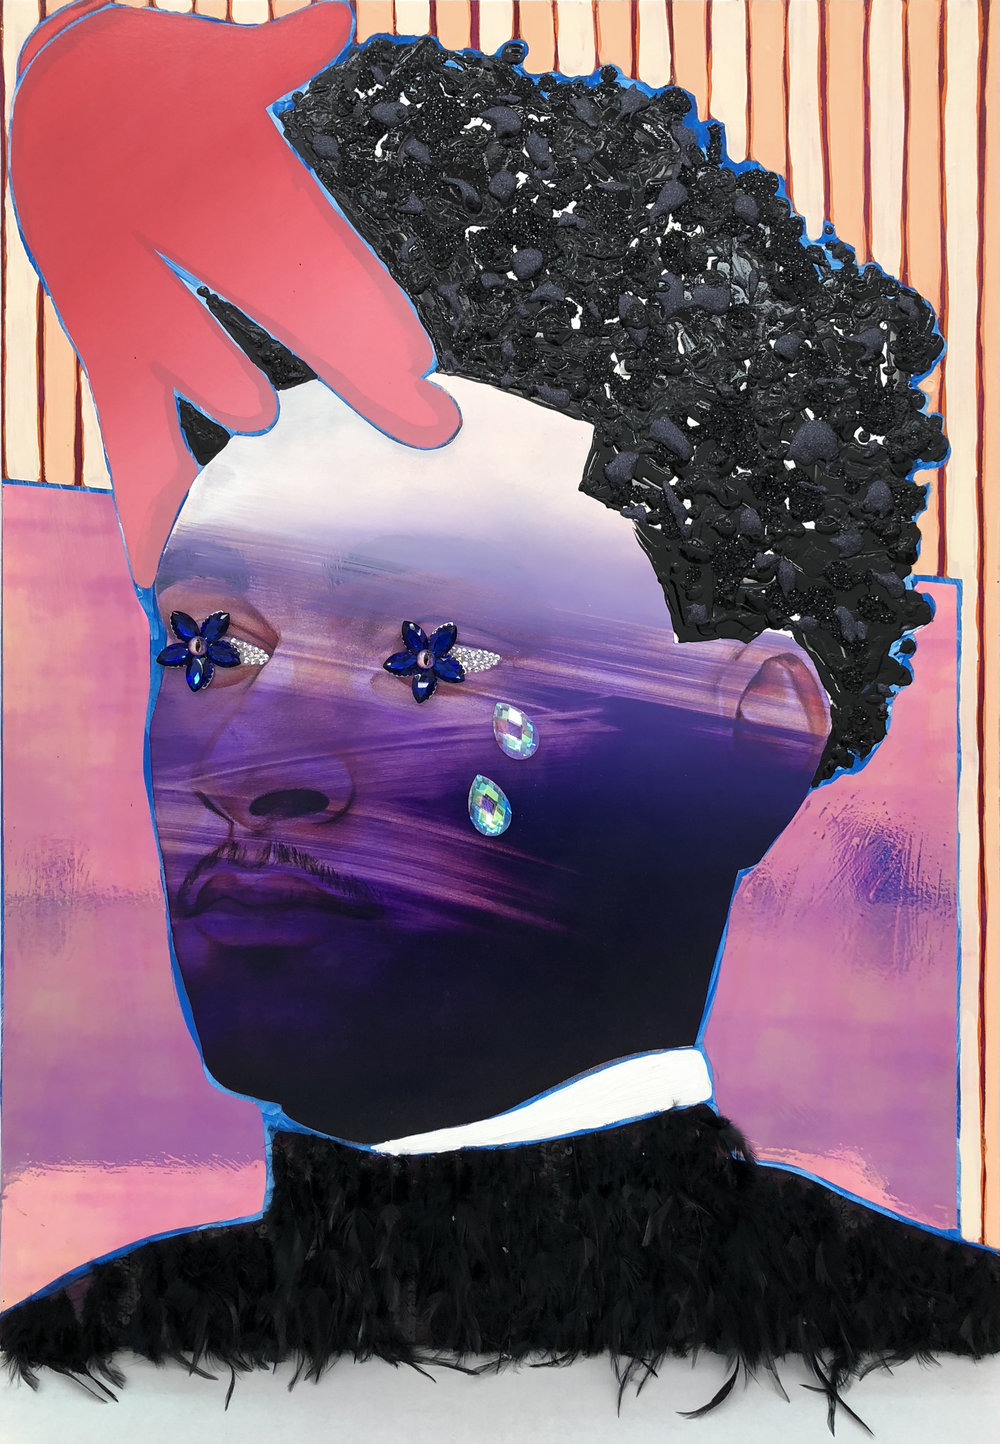 Devan Shimoyama  A Gentle Push , 2018 mixed media on canvas stretched over panel 30h x 40w in